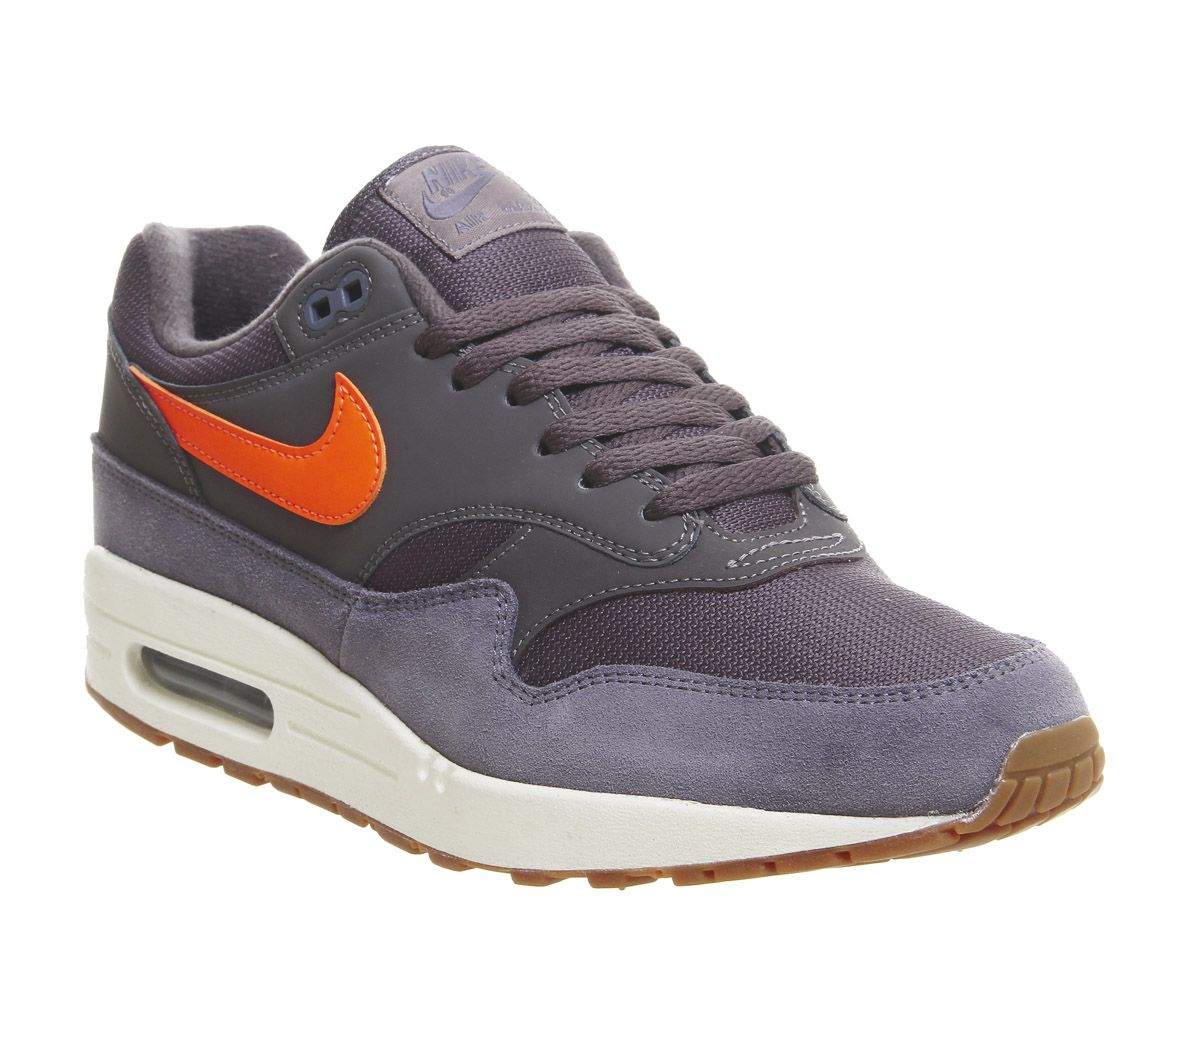 promo code fcaf3 97c08 Nike Air Max 1 Trainers Thunder Grey Total Orange White Gum - His ...